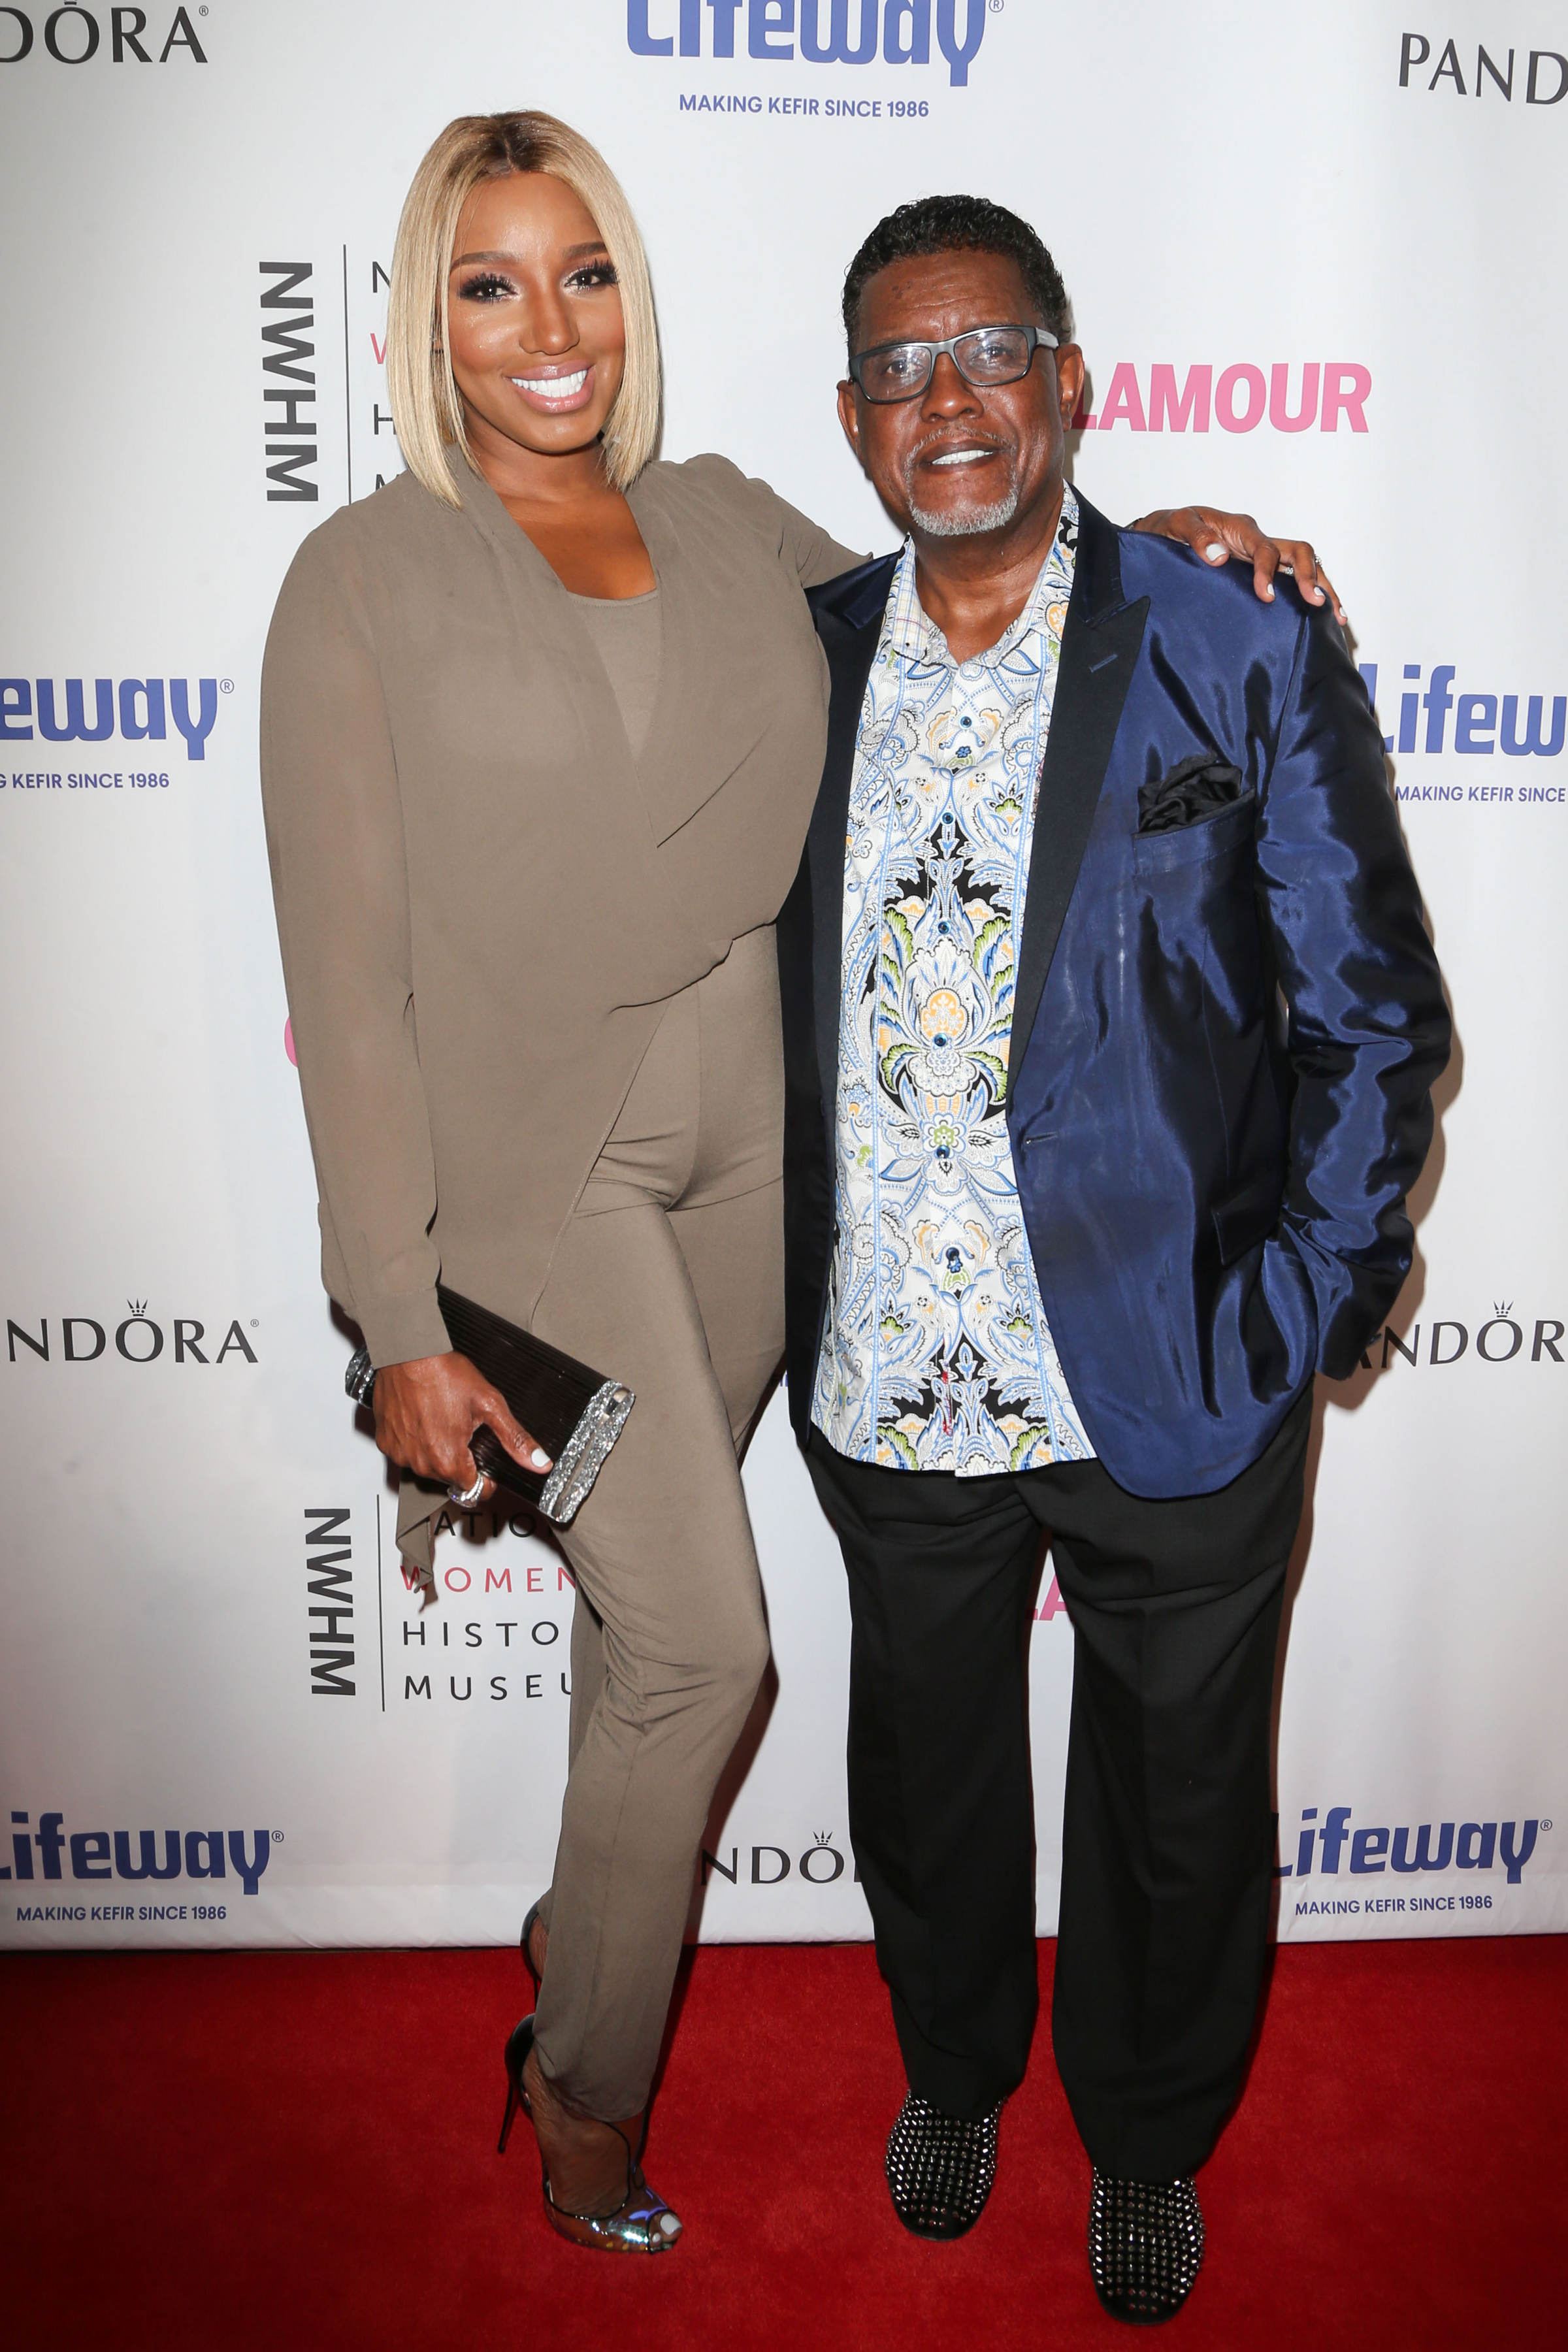 Greg Leakes Seeks Alternatives To Chemo In Cancer Battle